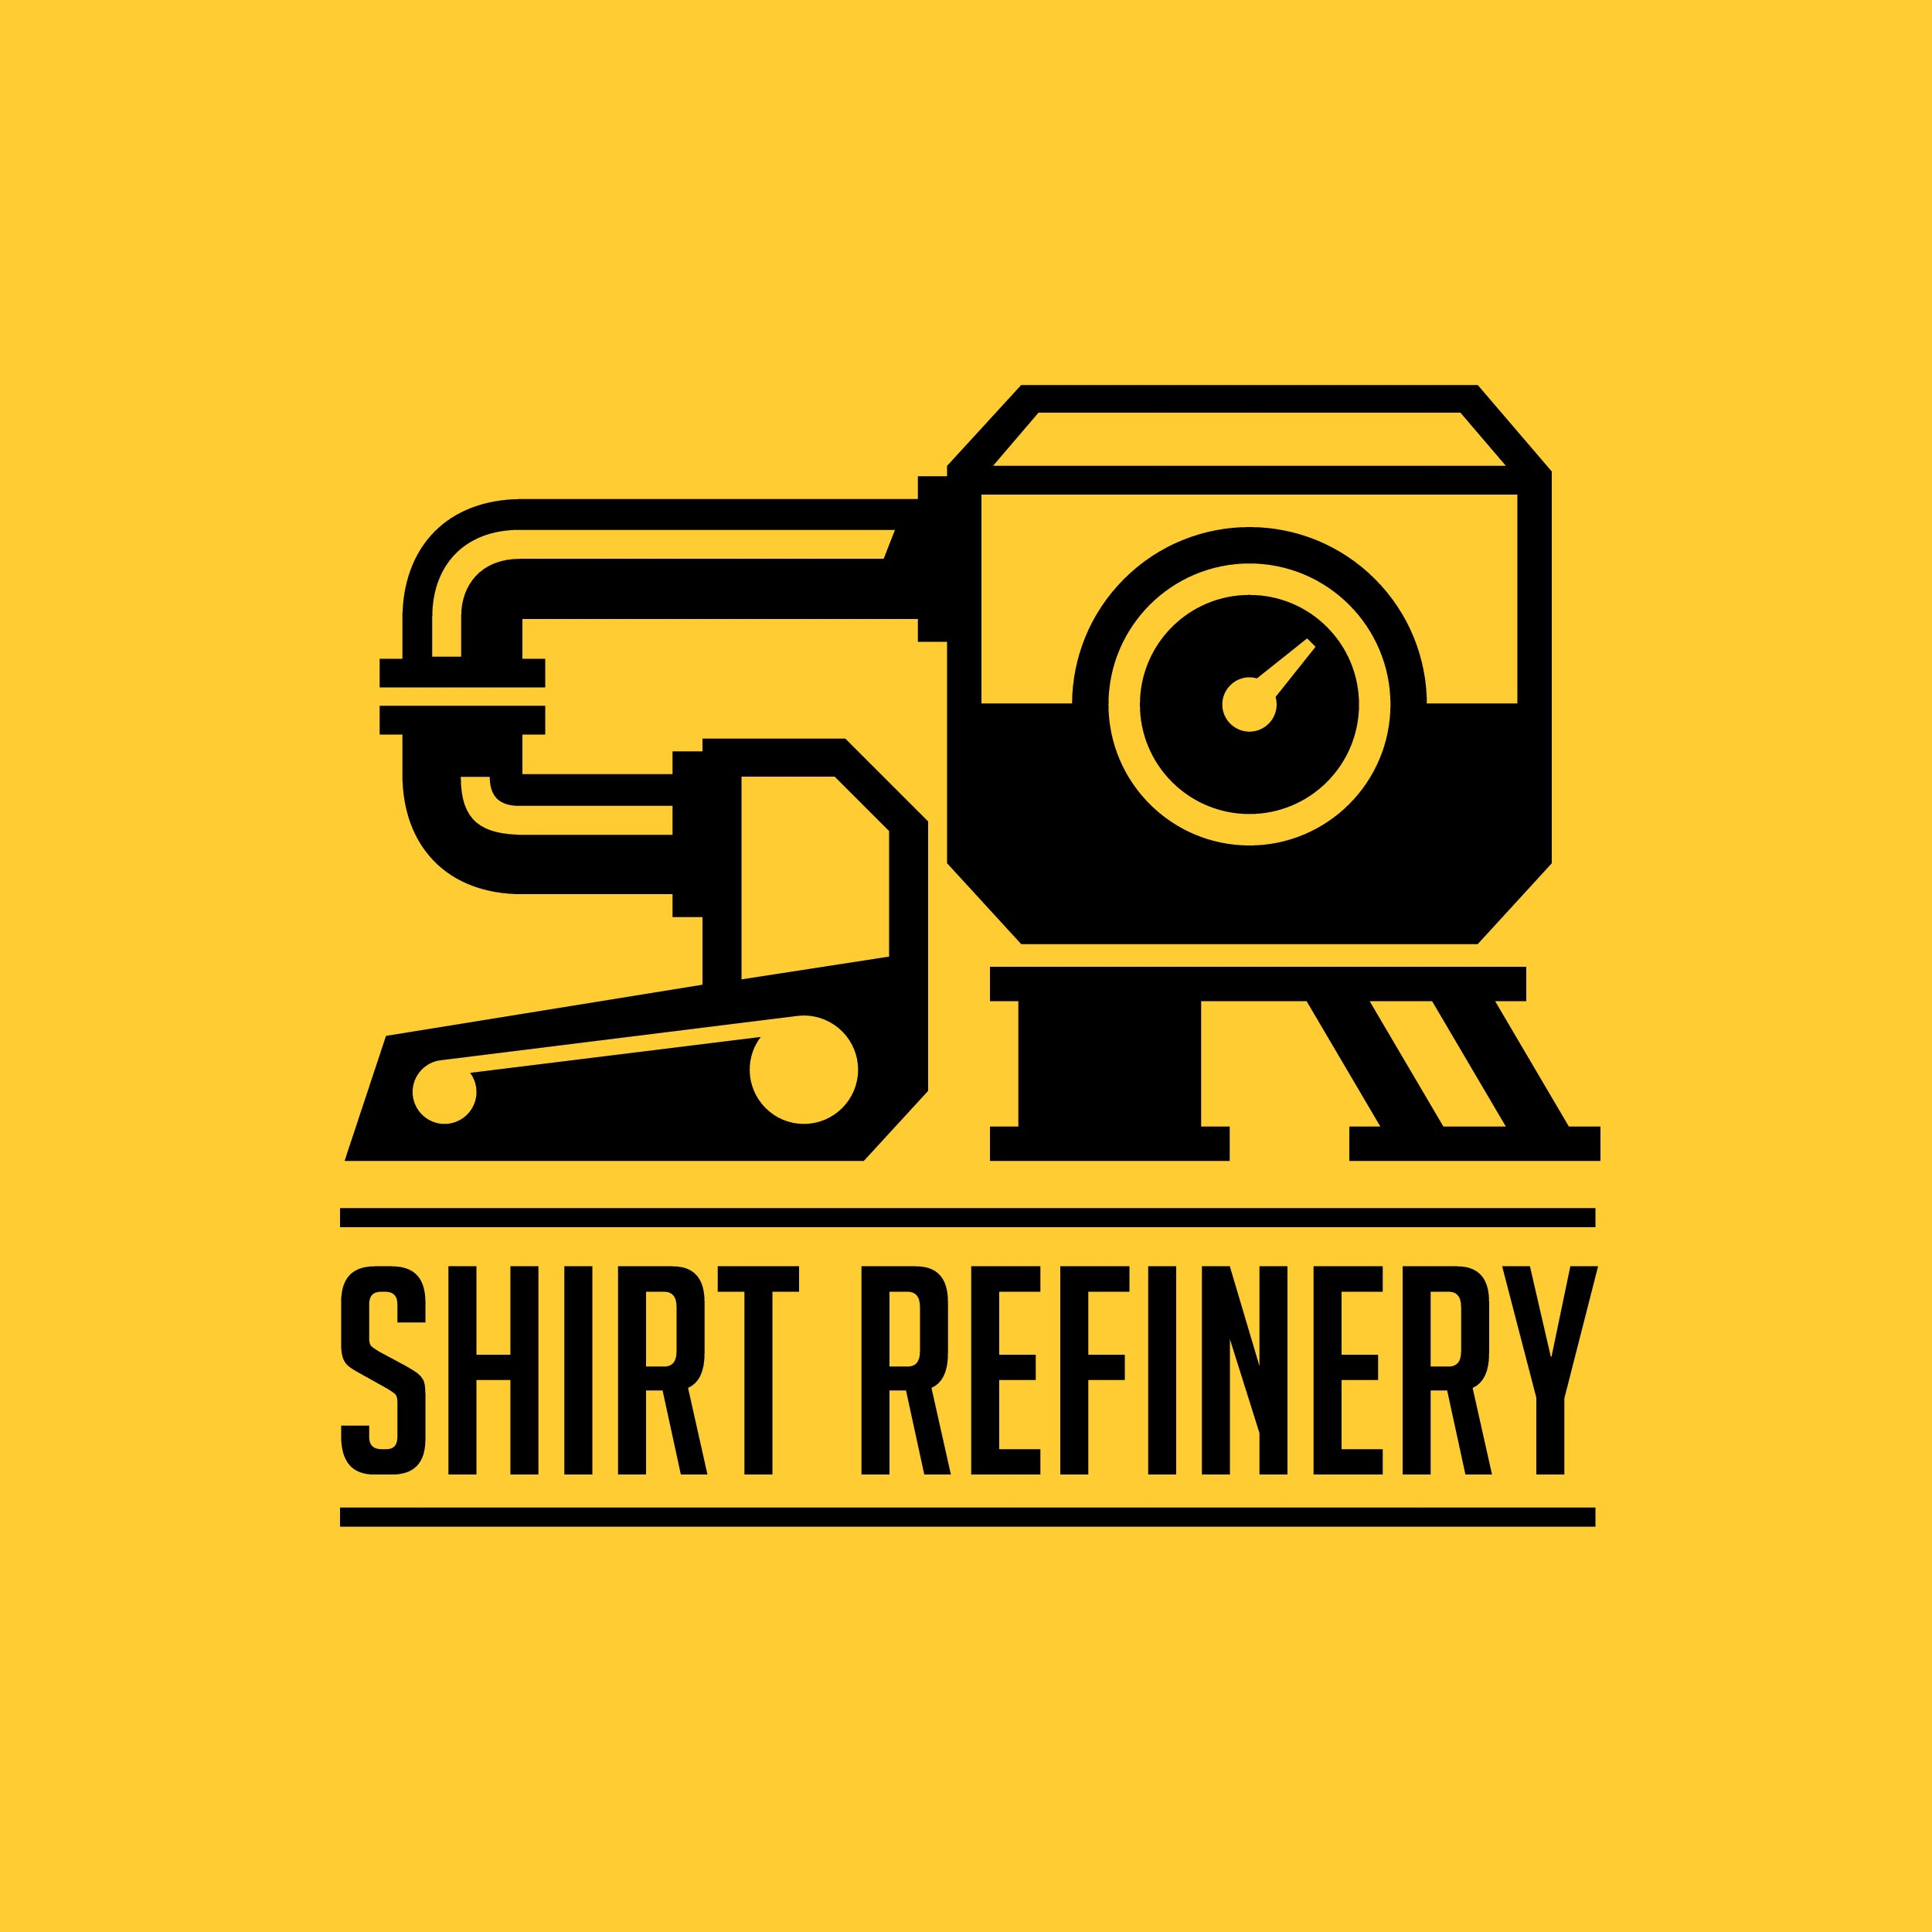 Create an elegant and sophisticated logo for ShirtRefinery.com